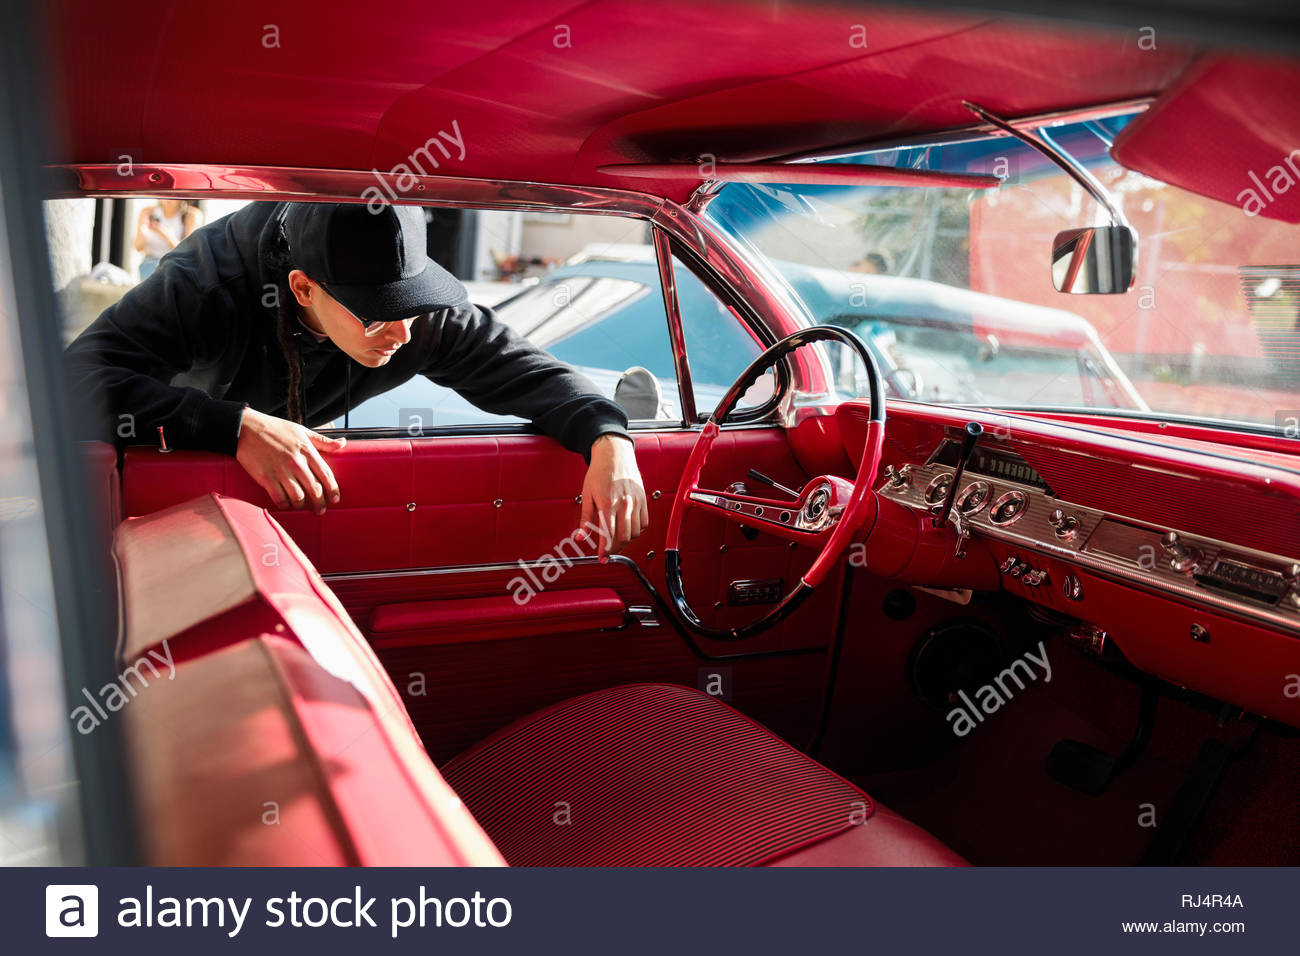 Latinx young man checking out red leather interior of vintage car - Stock Image